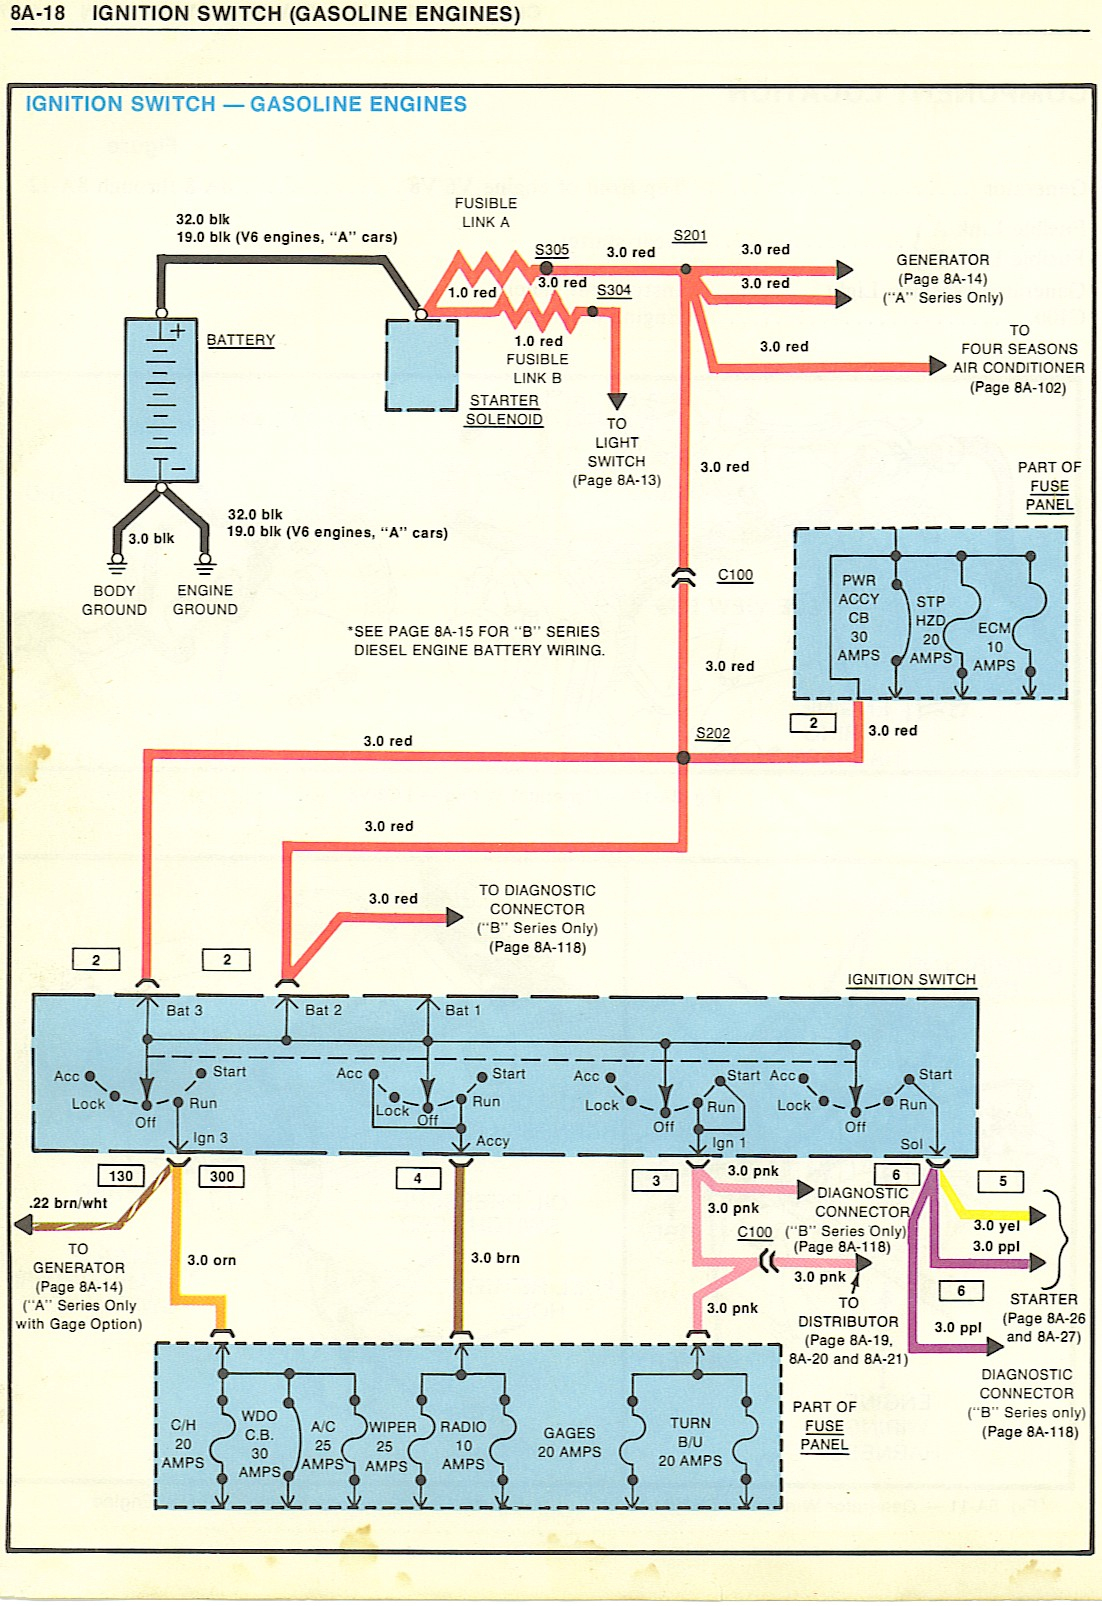 1969 Gm Ignition Switch Wiring Diagram | Wiring Diagram - Kubota Ignition Switch Wiring Diagram